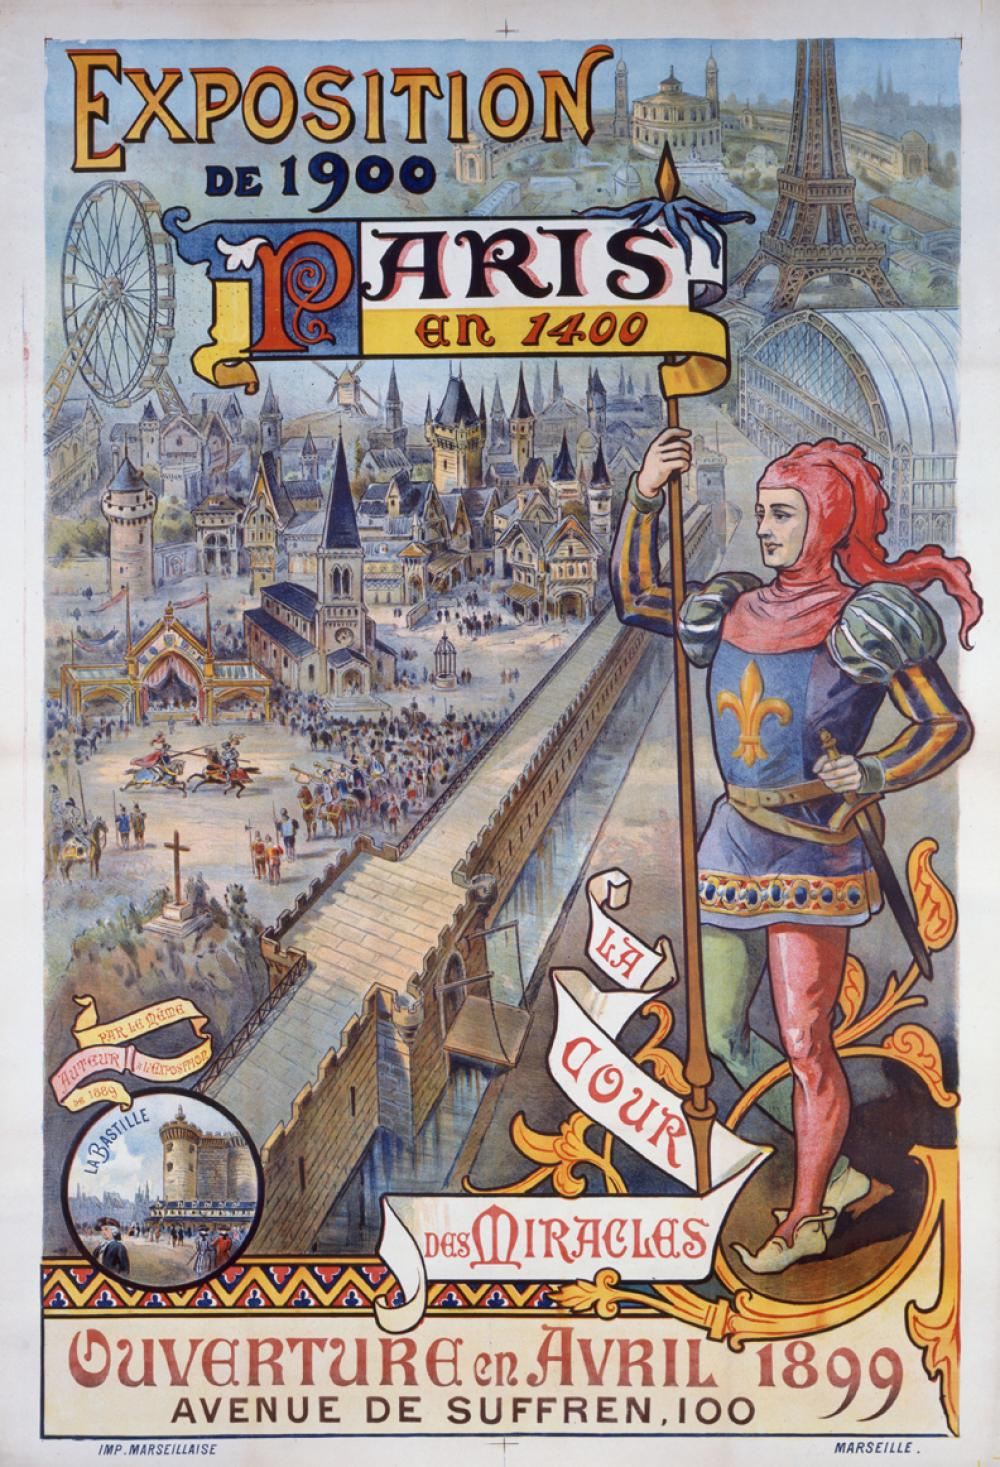 affiche expo universelle 1900 paris